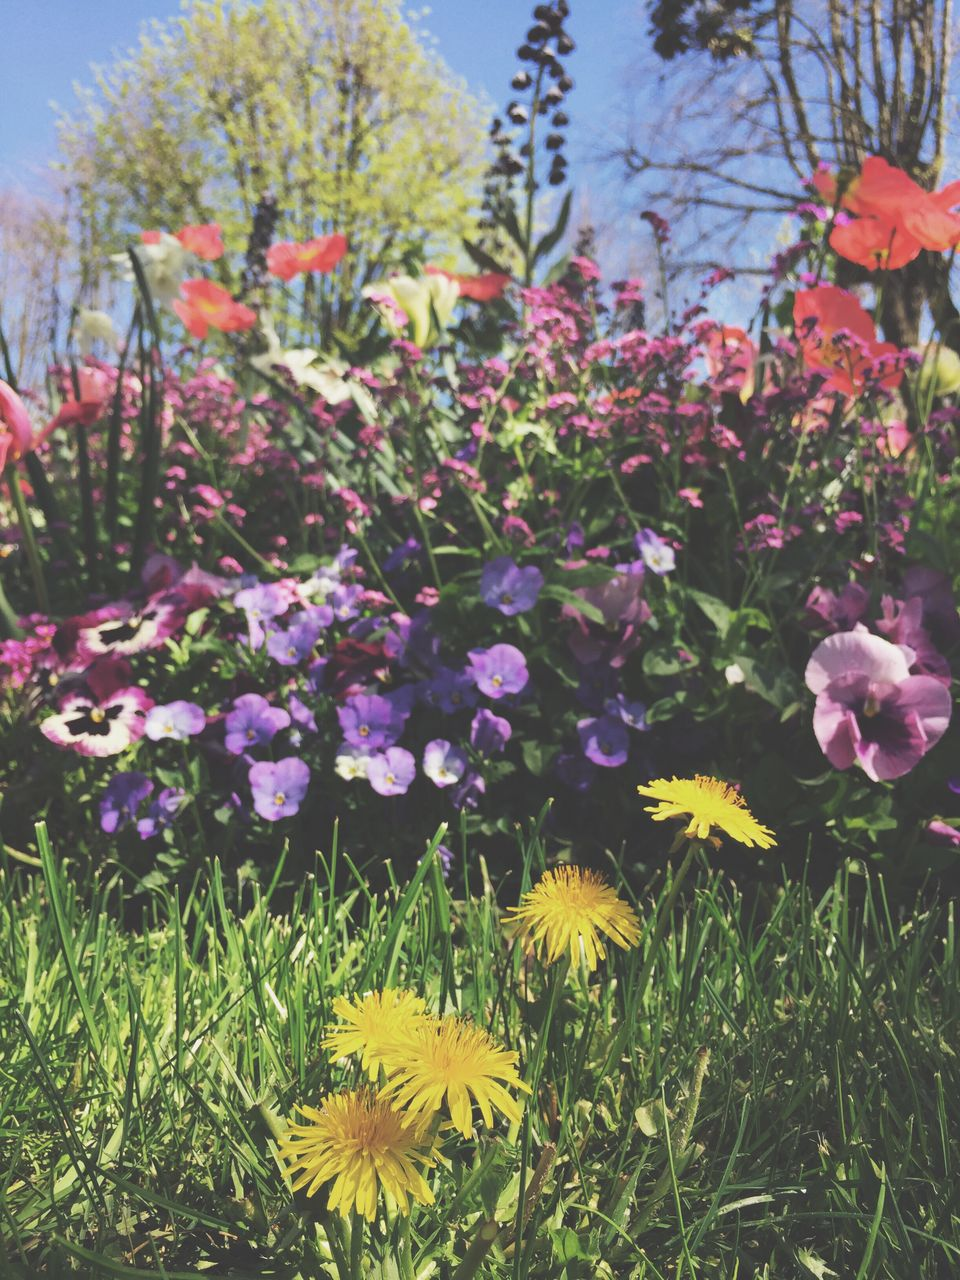 Flowers Blooming On Grassy Field During Sunny Day